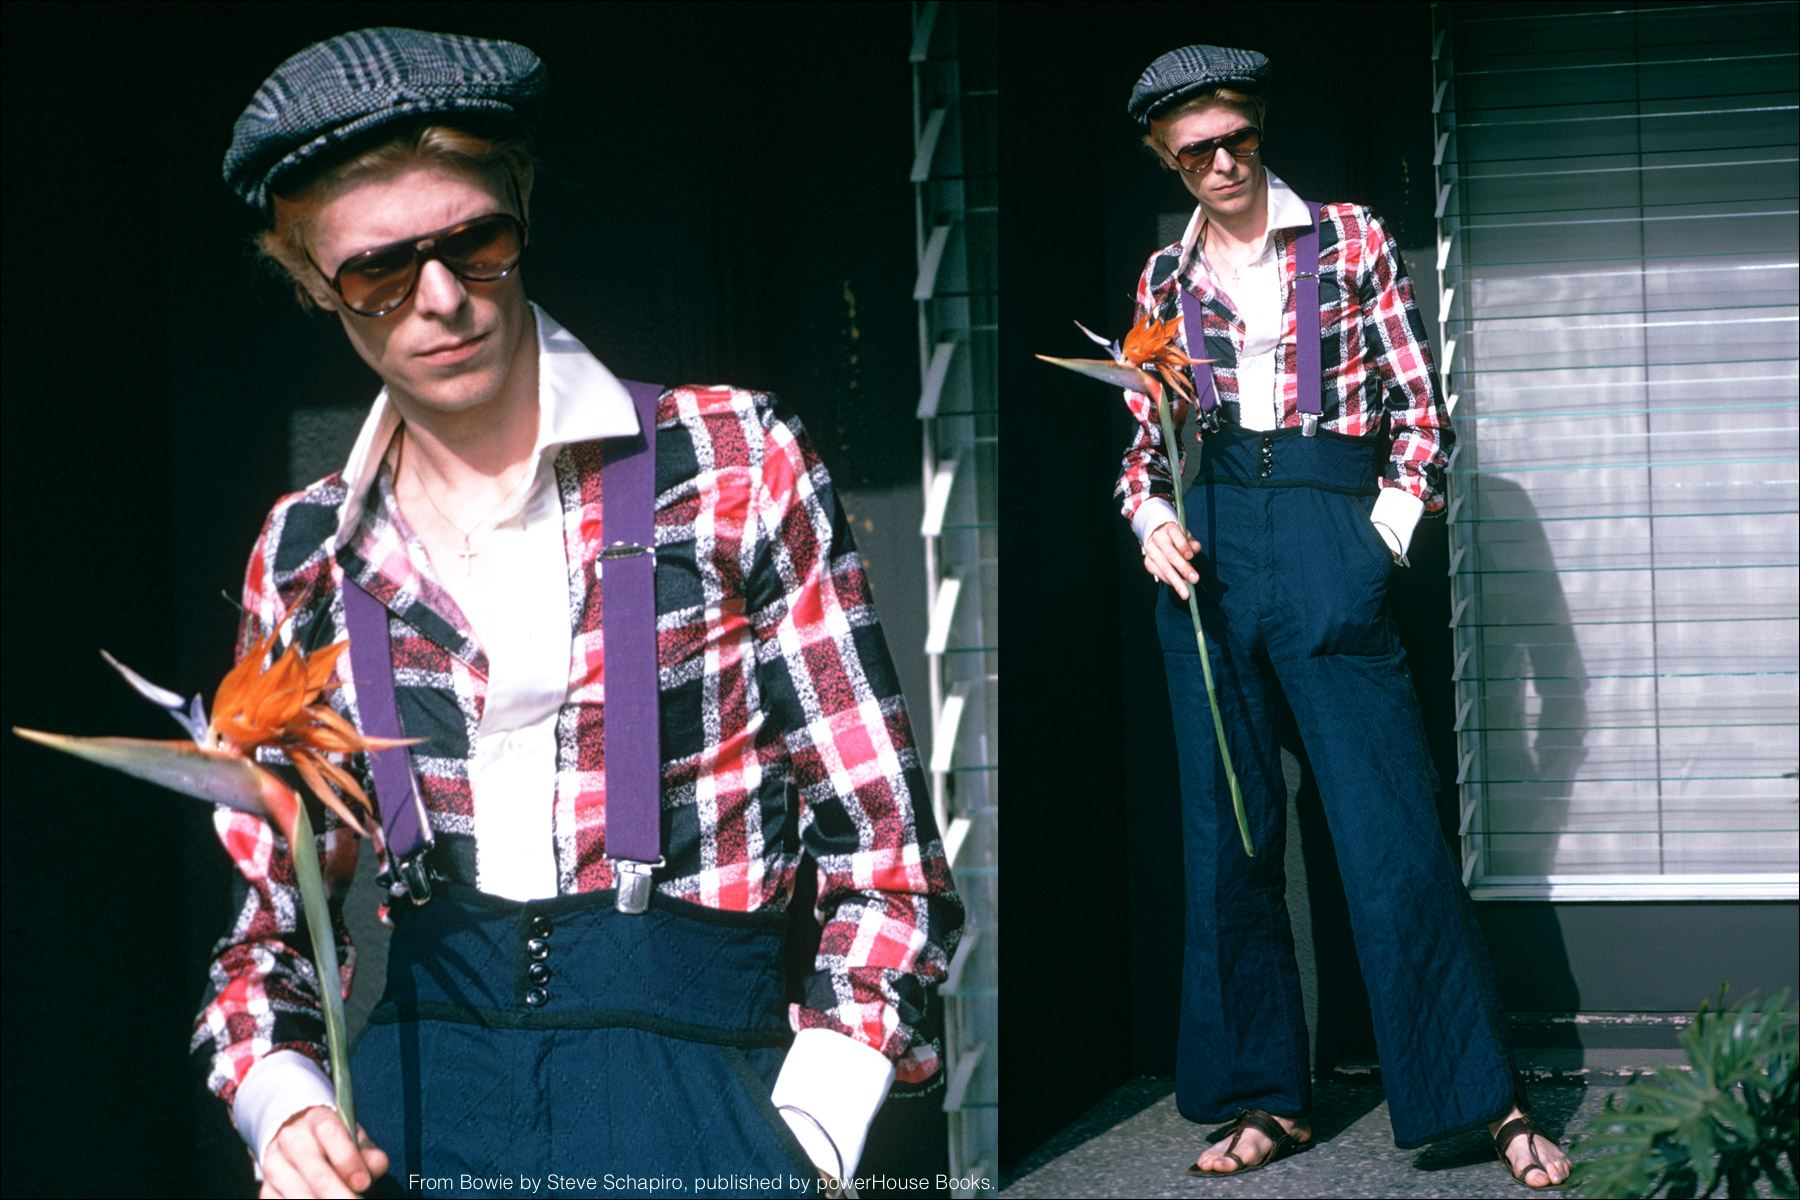 David Bowie photographed in Los Angeles in 1974. From the book Bowie by Steve Schapiro, published by powerHouse Books. Ponyboy magazine NY.